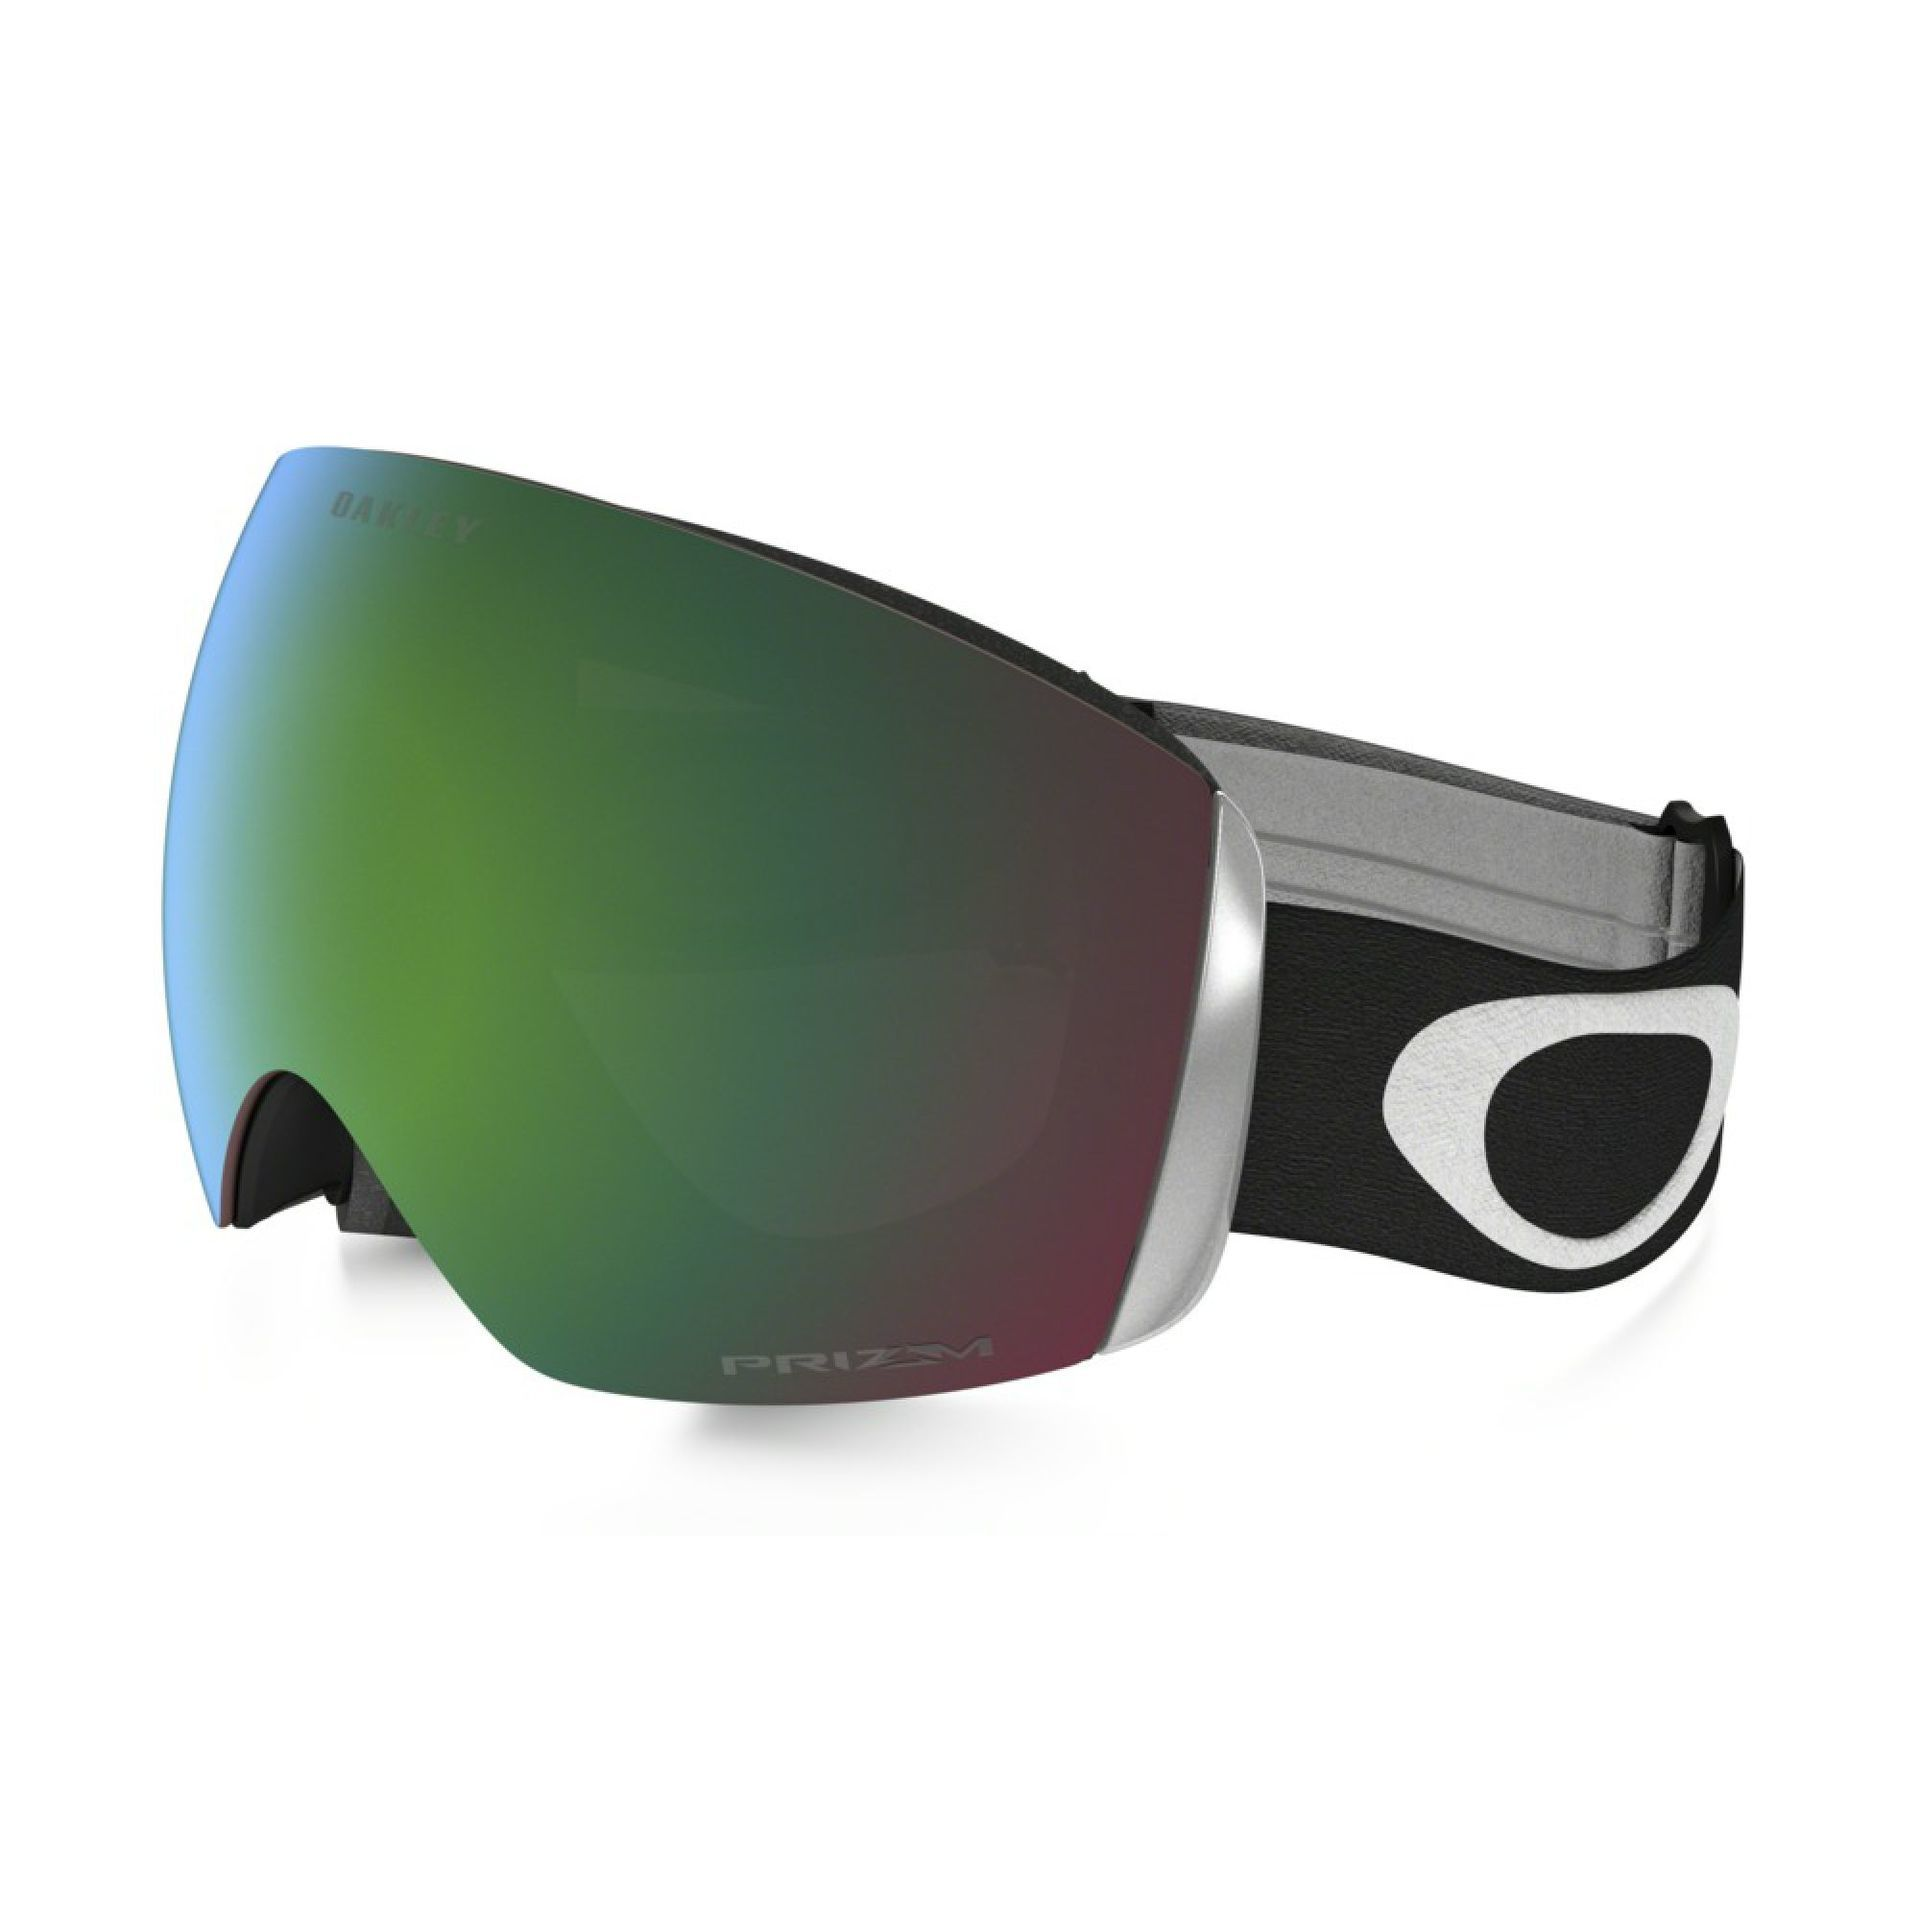 GOGLE OAKLEY FLIGHT DECK MATTE BLACK|PRIZM JADE IRIDIUM 1